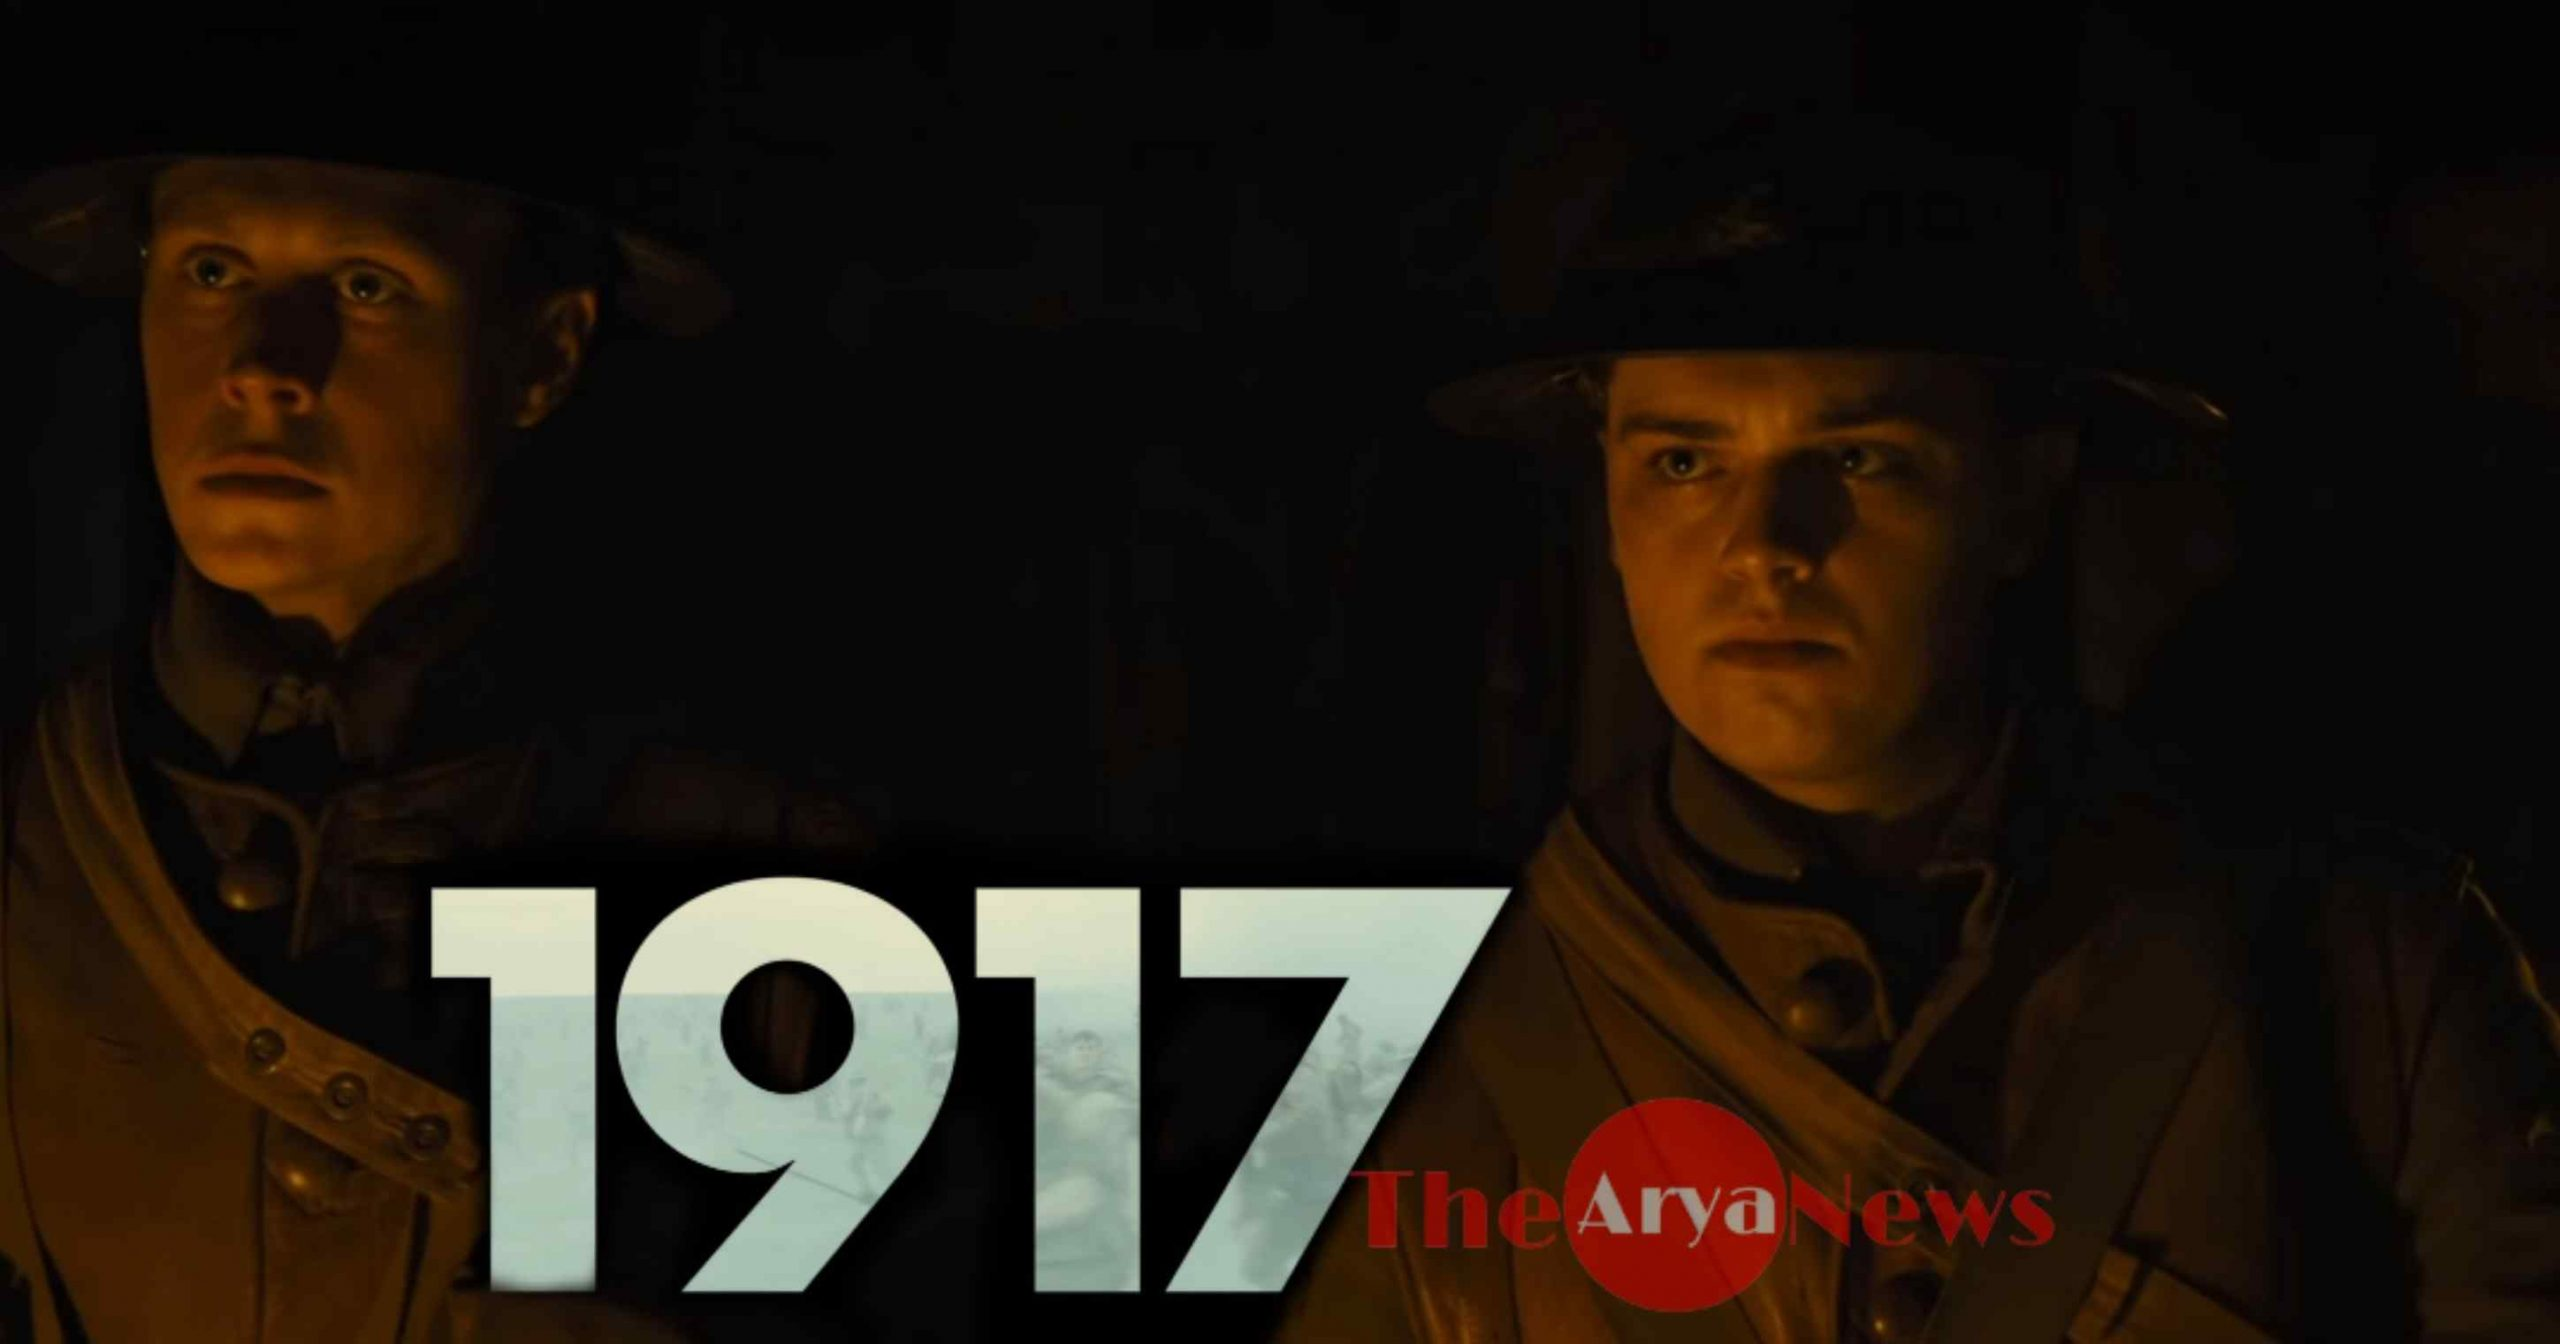 1917 Full Leaked Movie Download 2019 By Filmyzilla Thearyanews Com